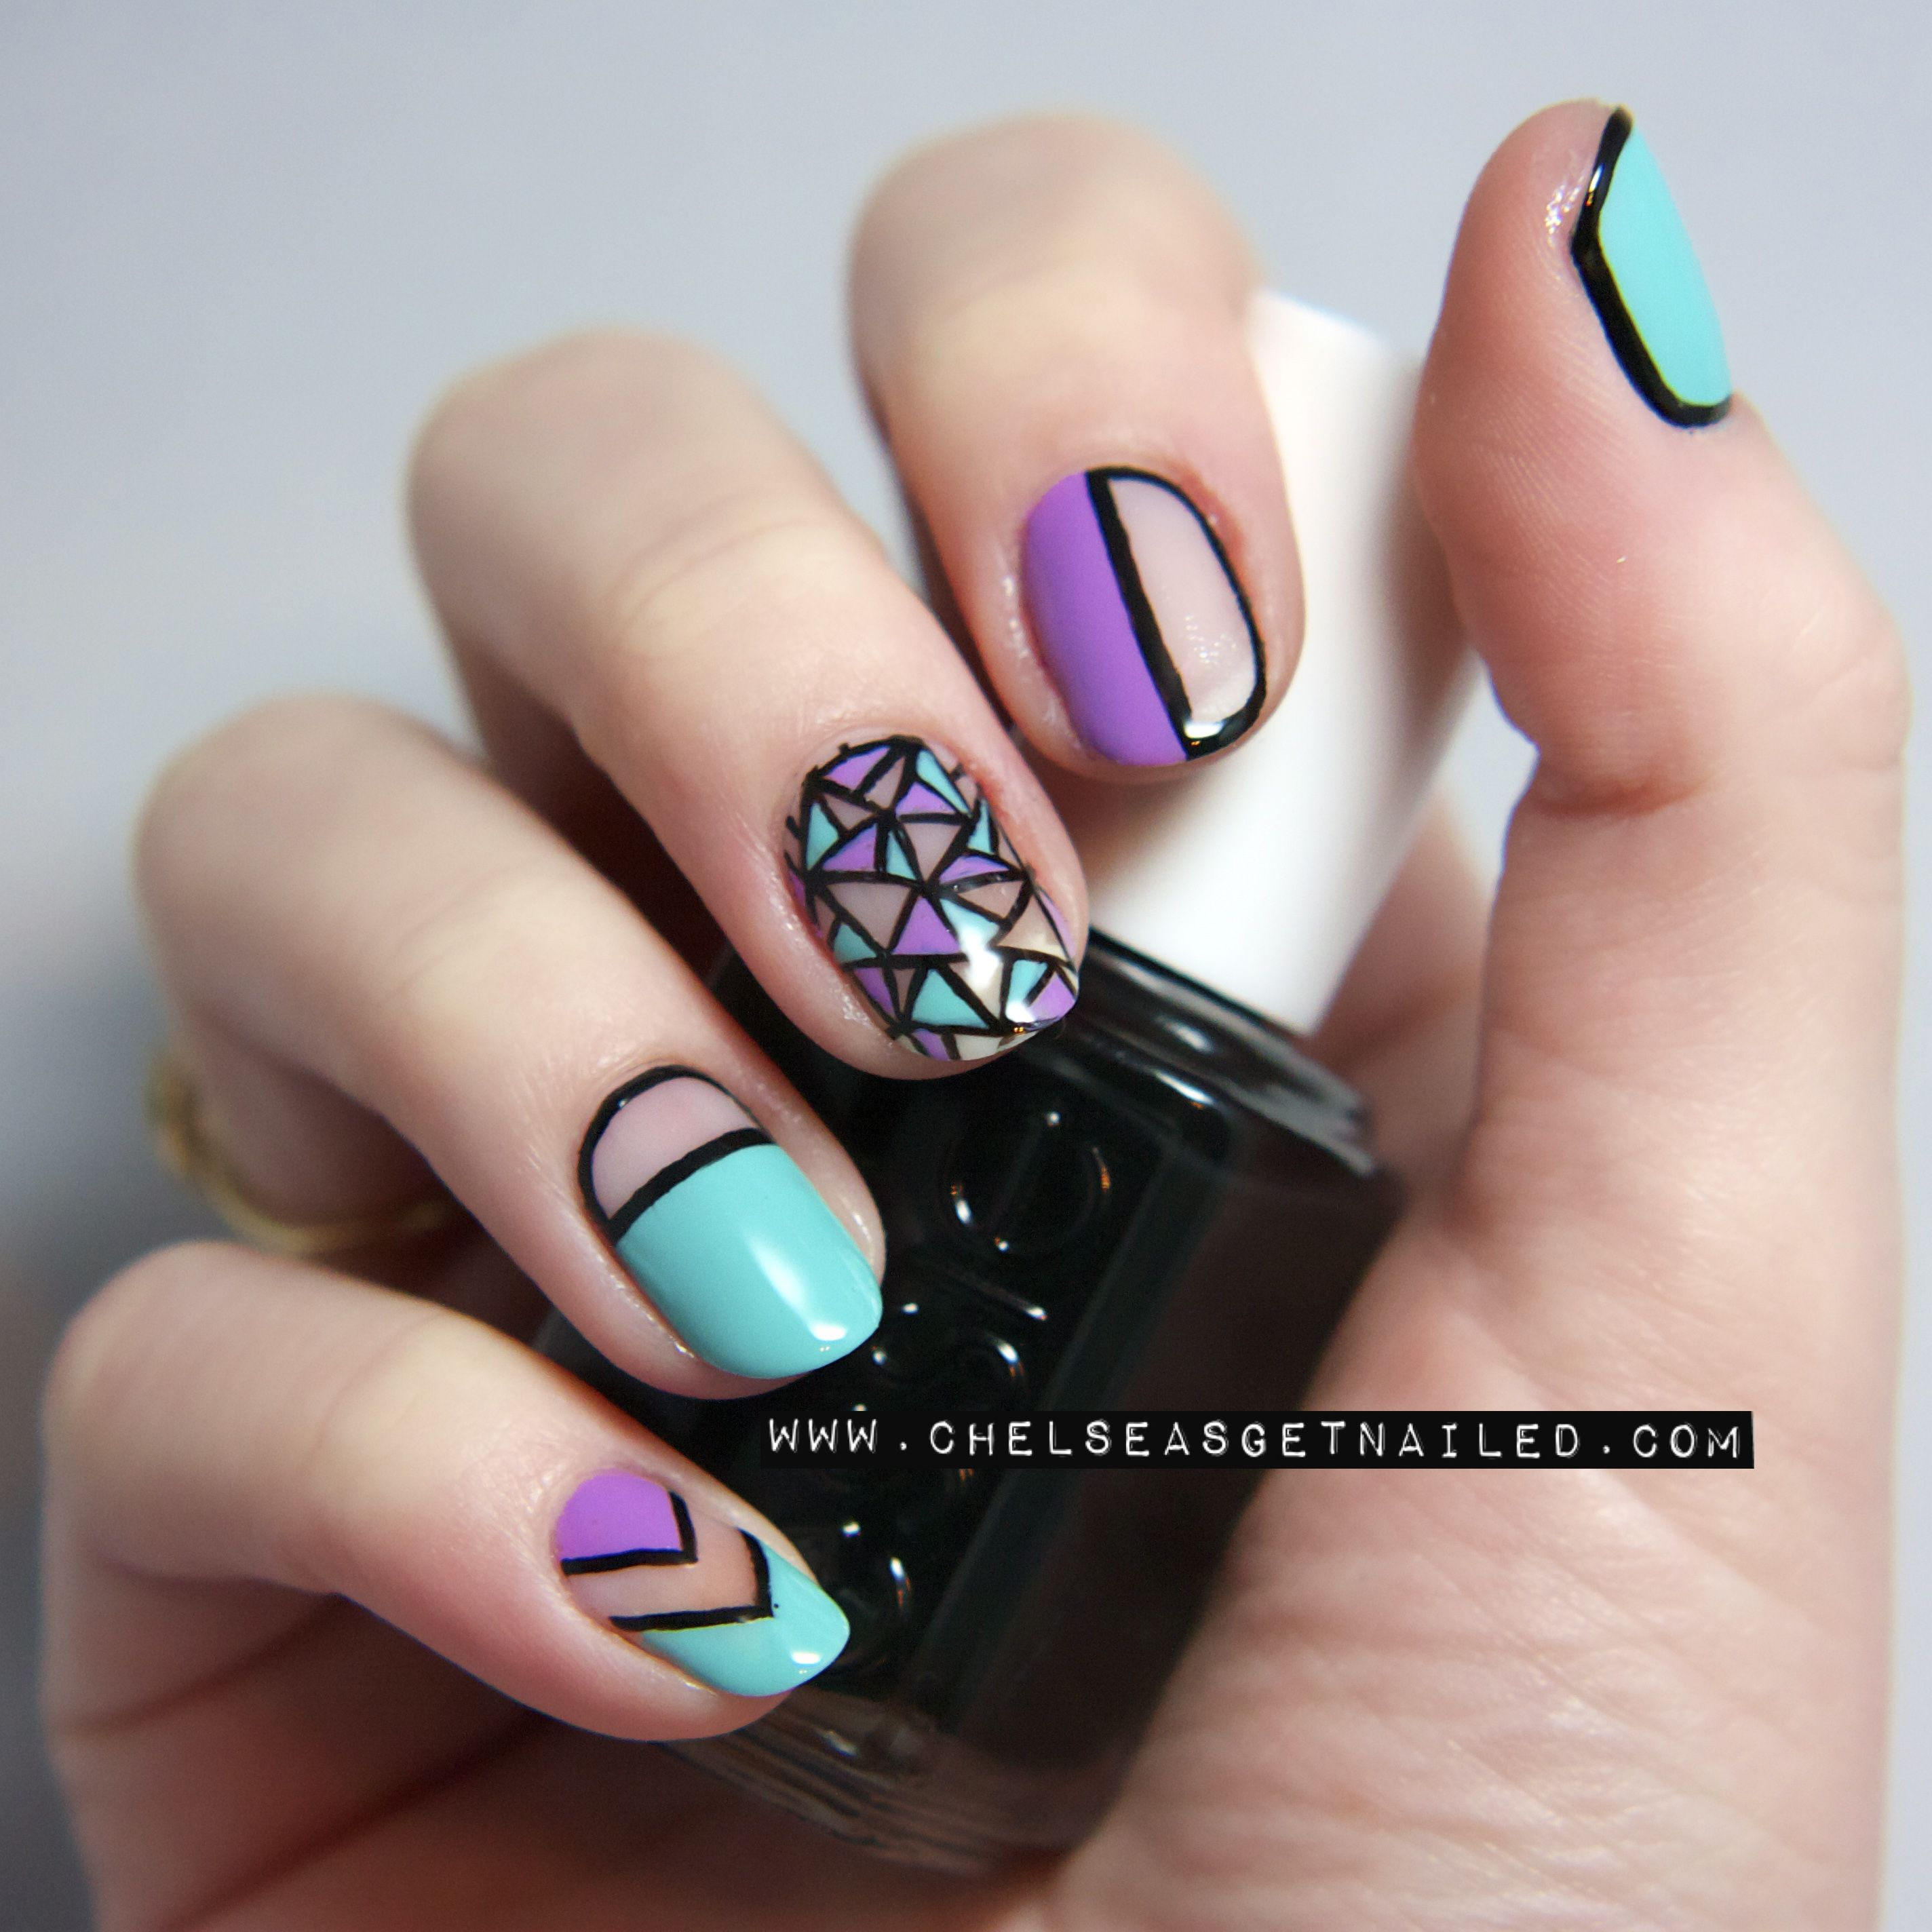 Cut Out Nails www.chelseasgetnailed.com | Nail Art | Pinterest ...